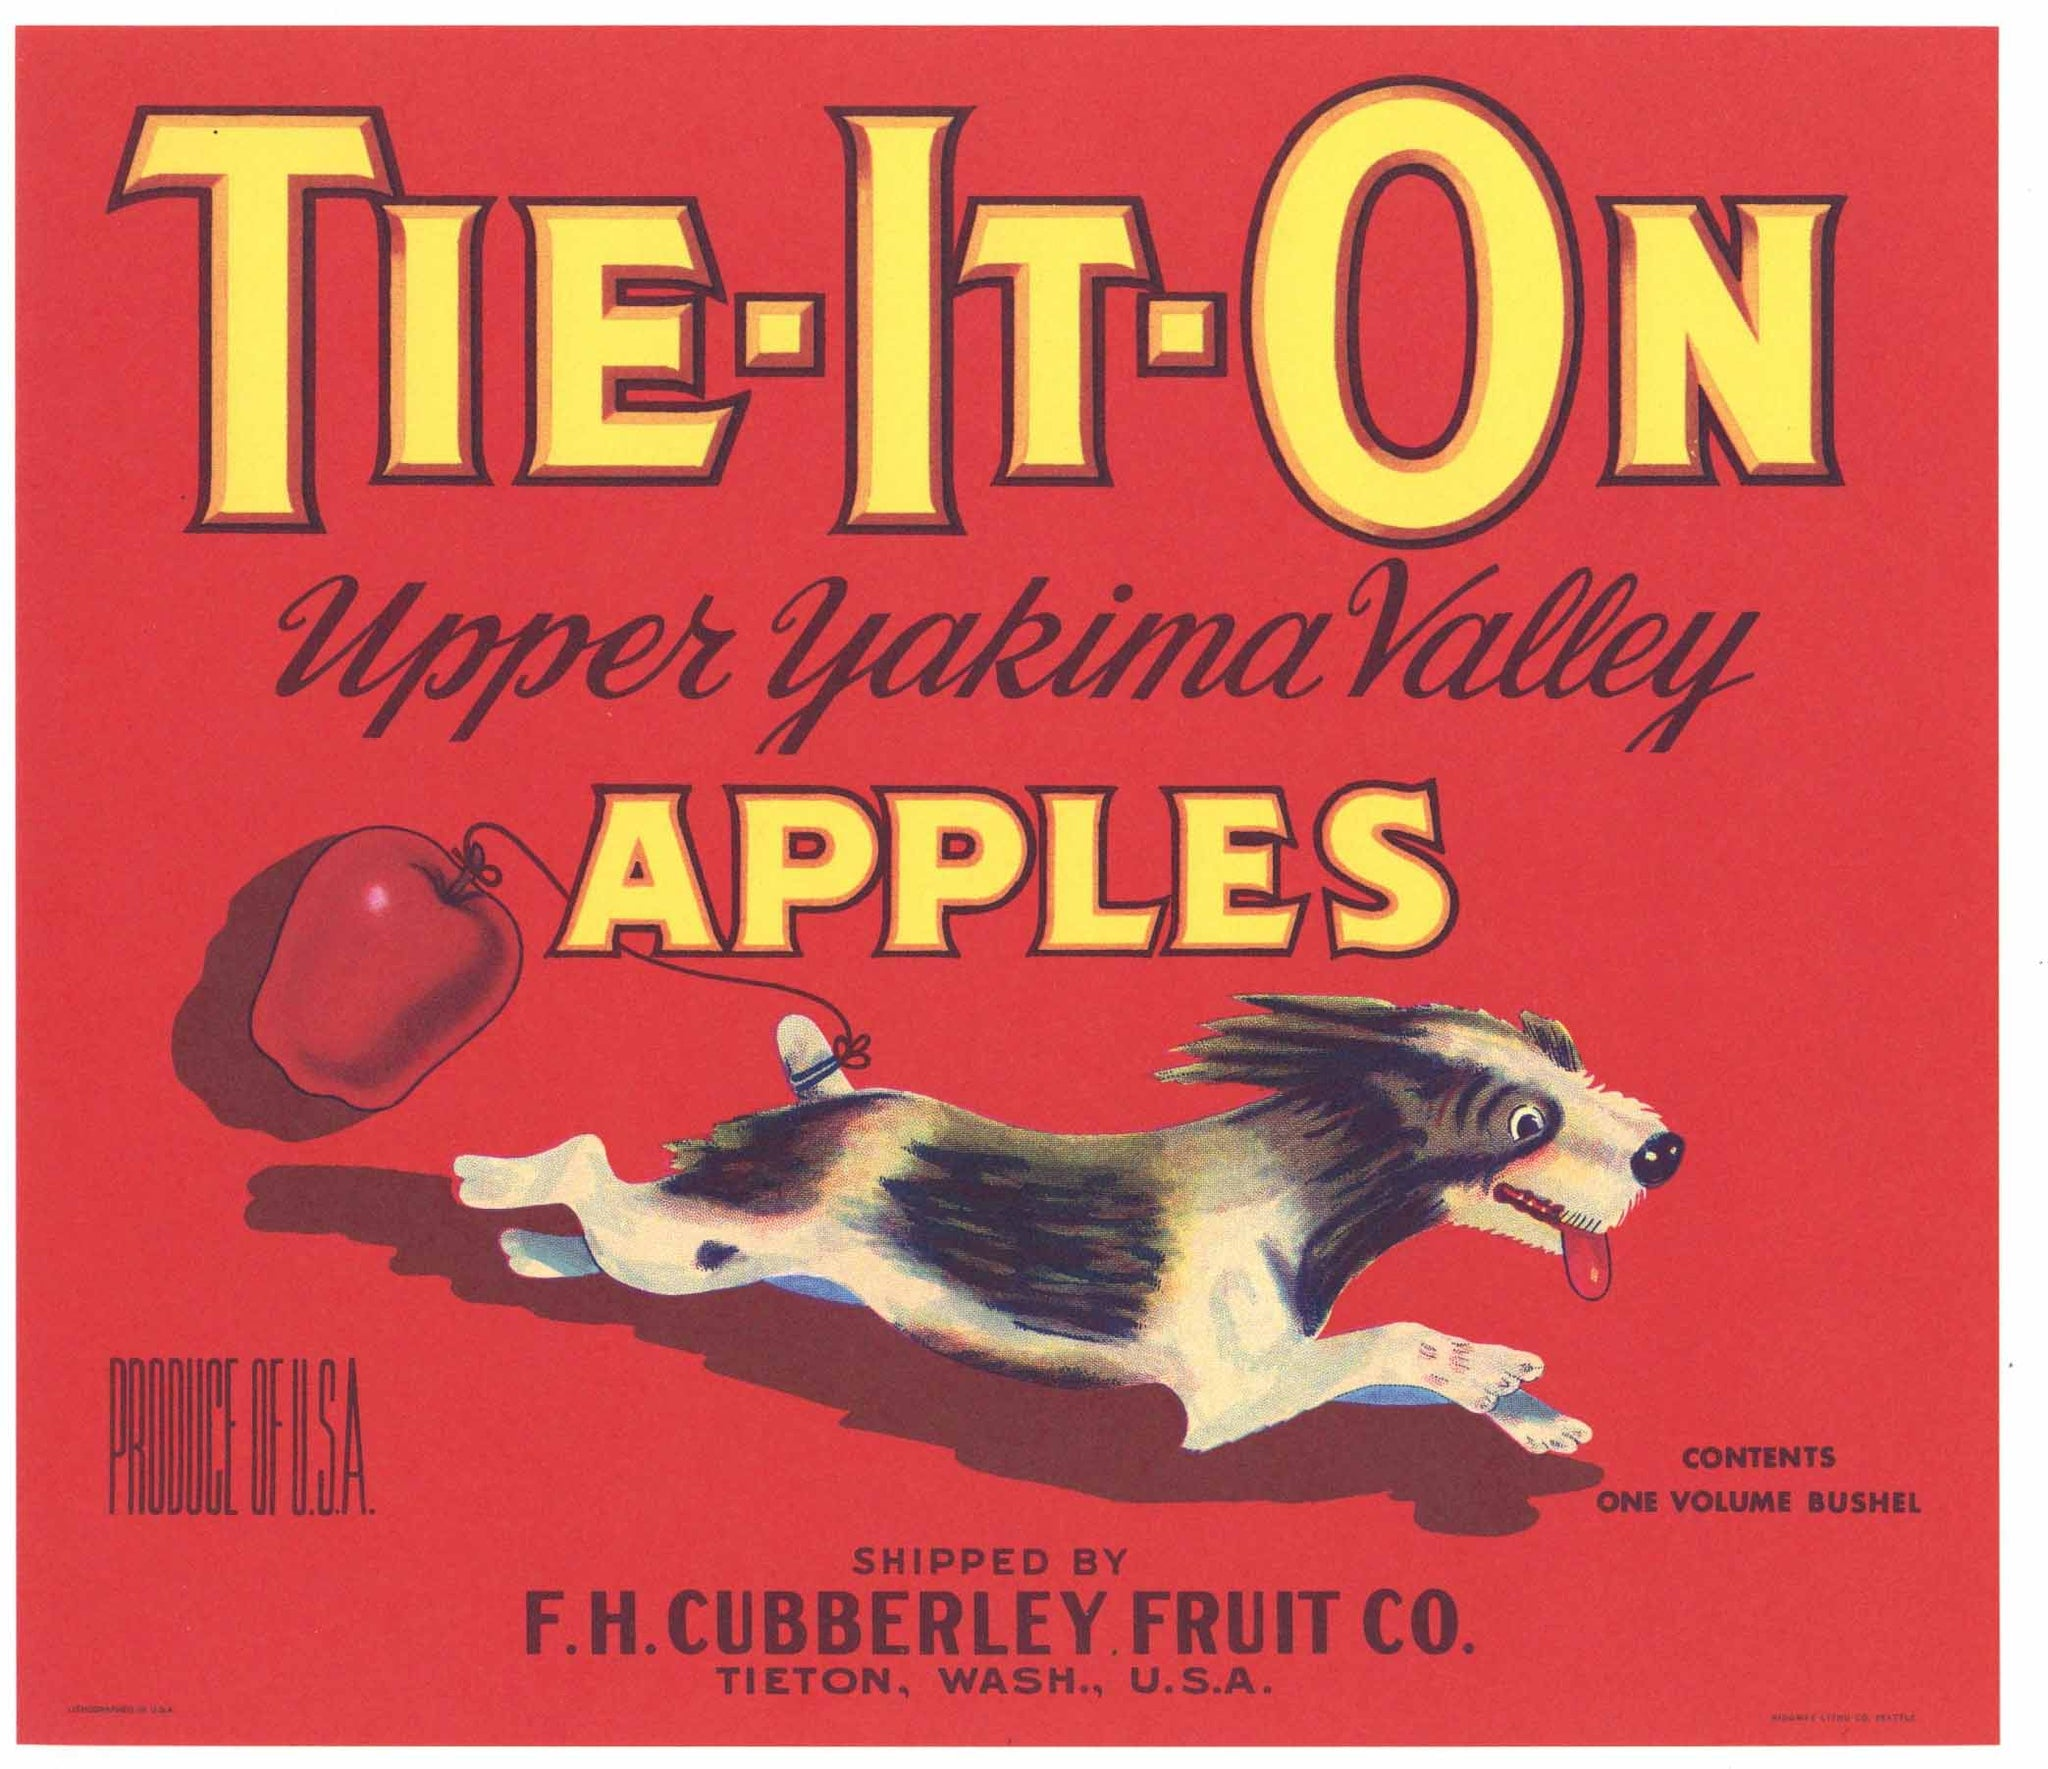 Tie-It-On Brand Vintage Tieton, Washington Apple Crate Label, red